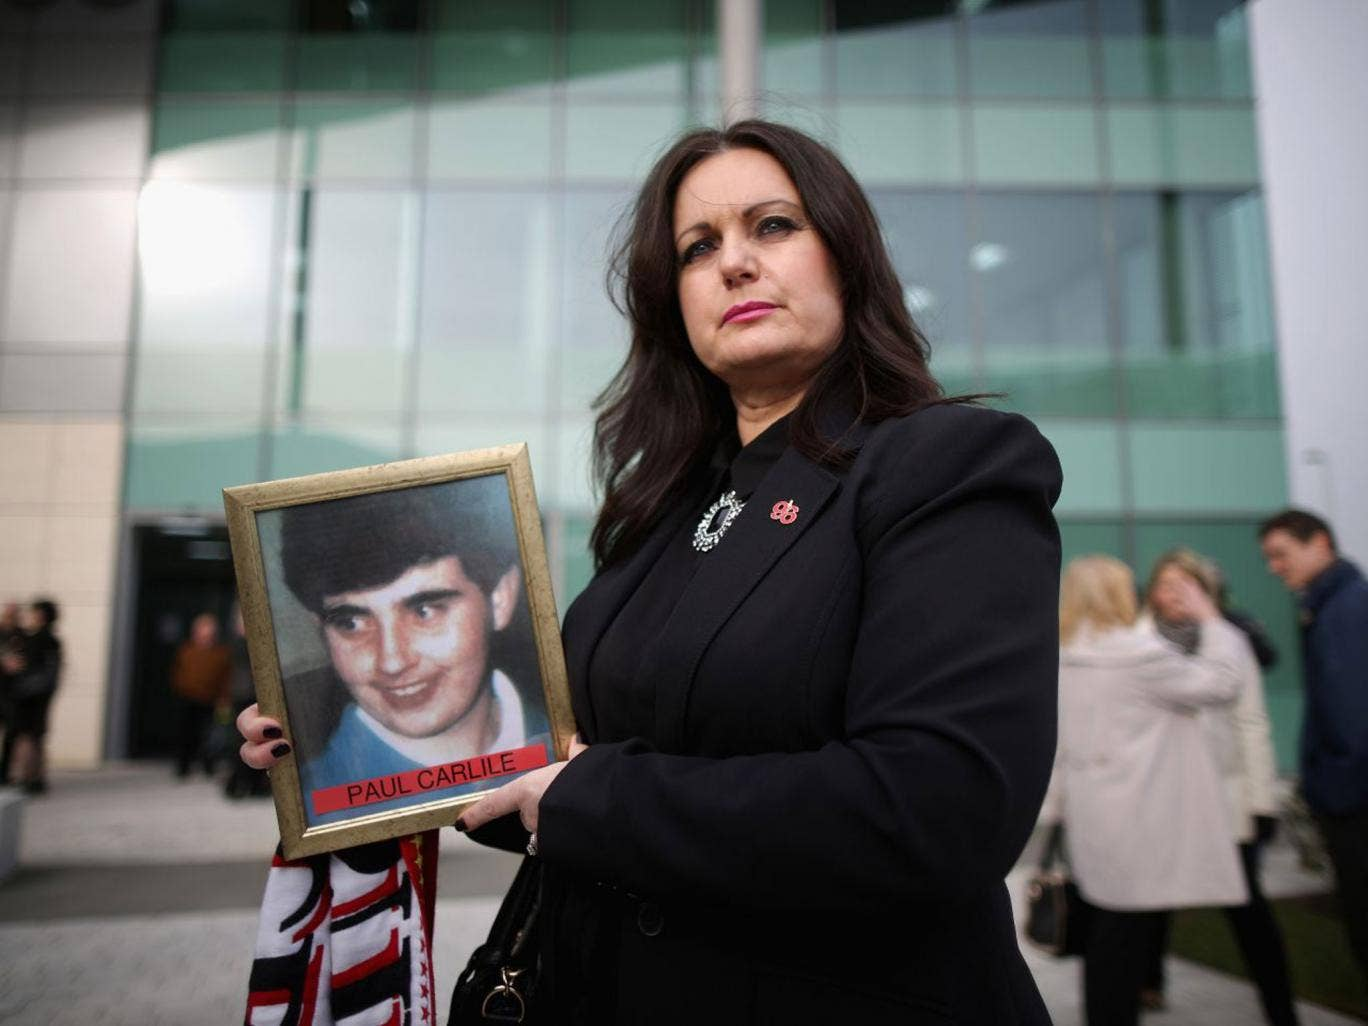 Donna Miller, carrying a picture of her brother Paul Carlile, who died aged 19 at Hillsborough, arrives for the start of the new inquest